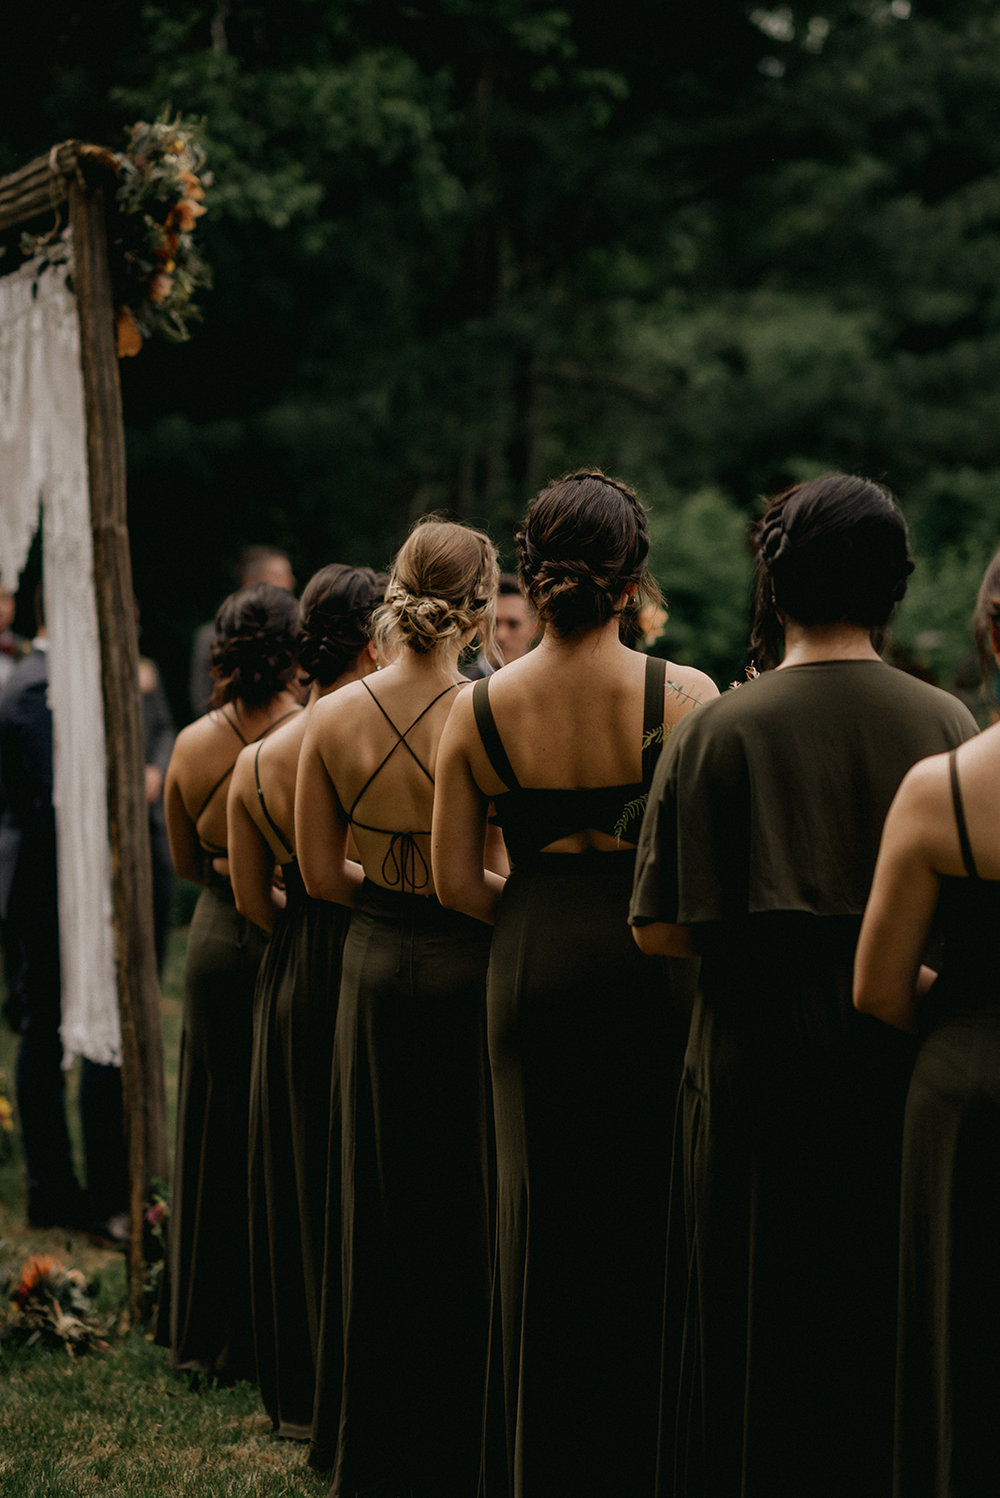 Forest greens dresses of bridesmaids from the back - Pearl Weddings & Events